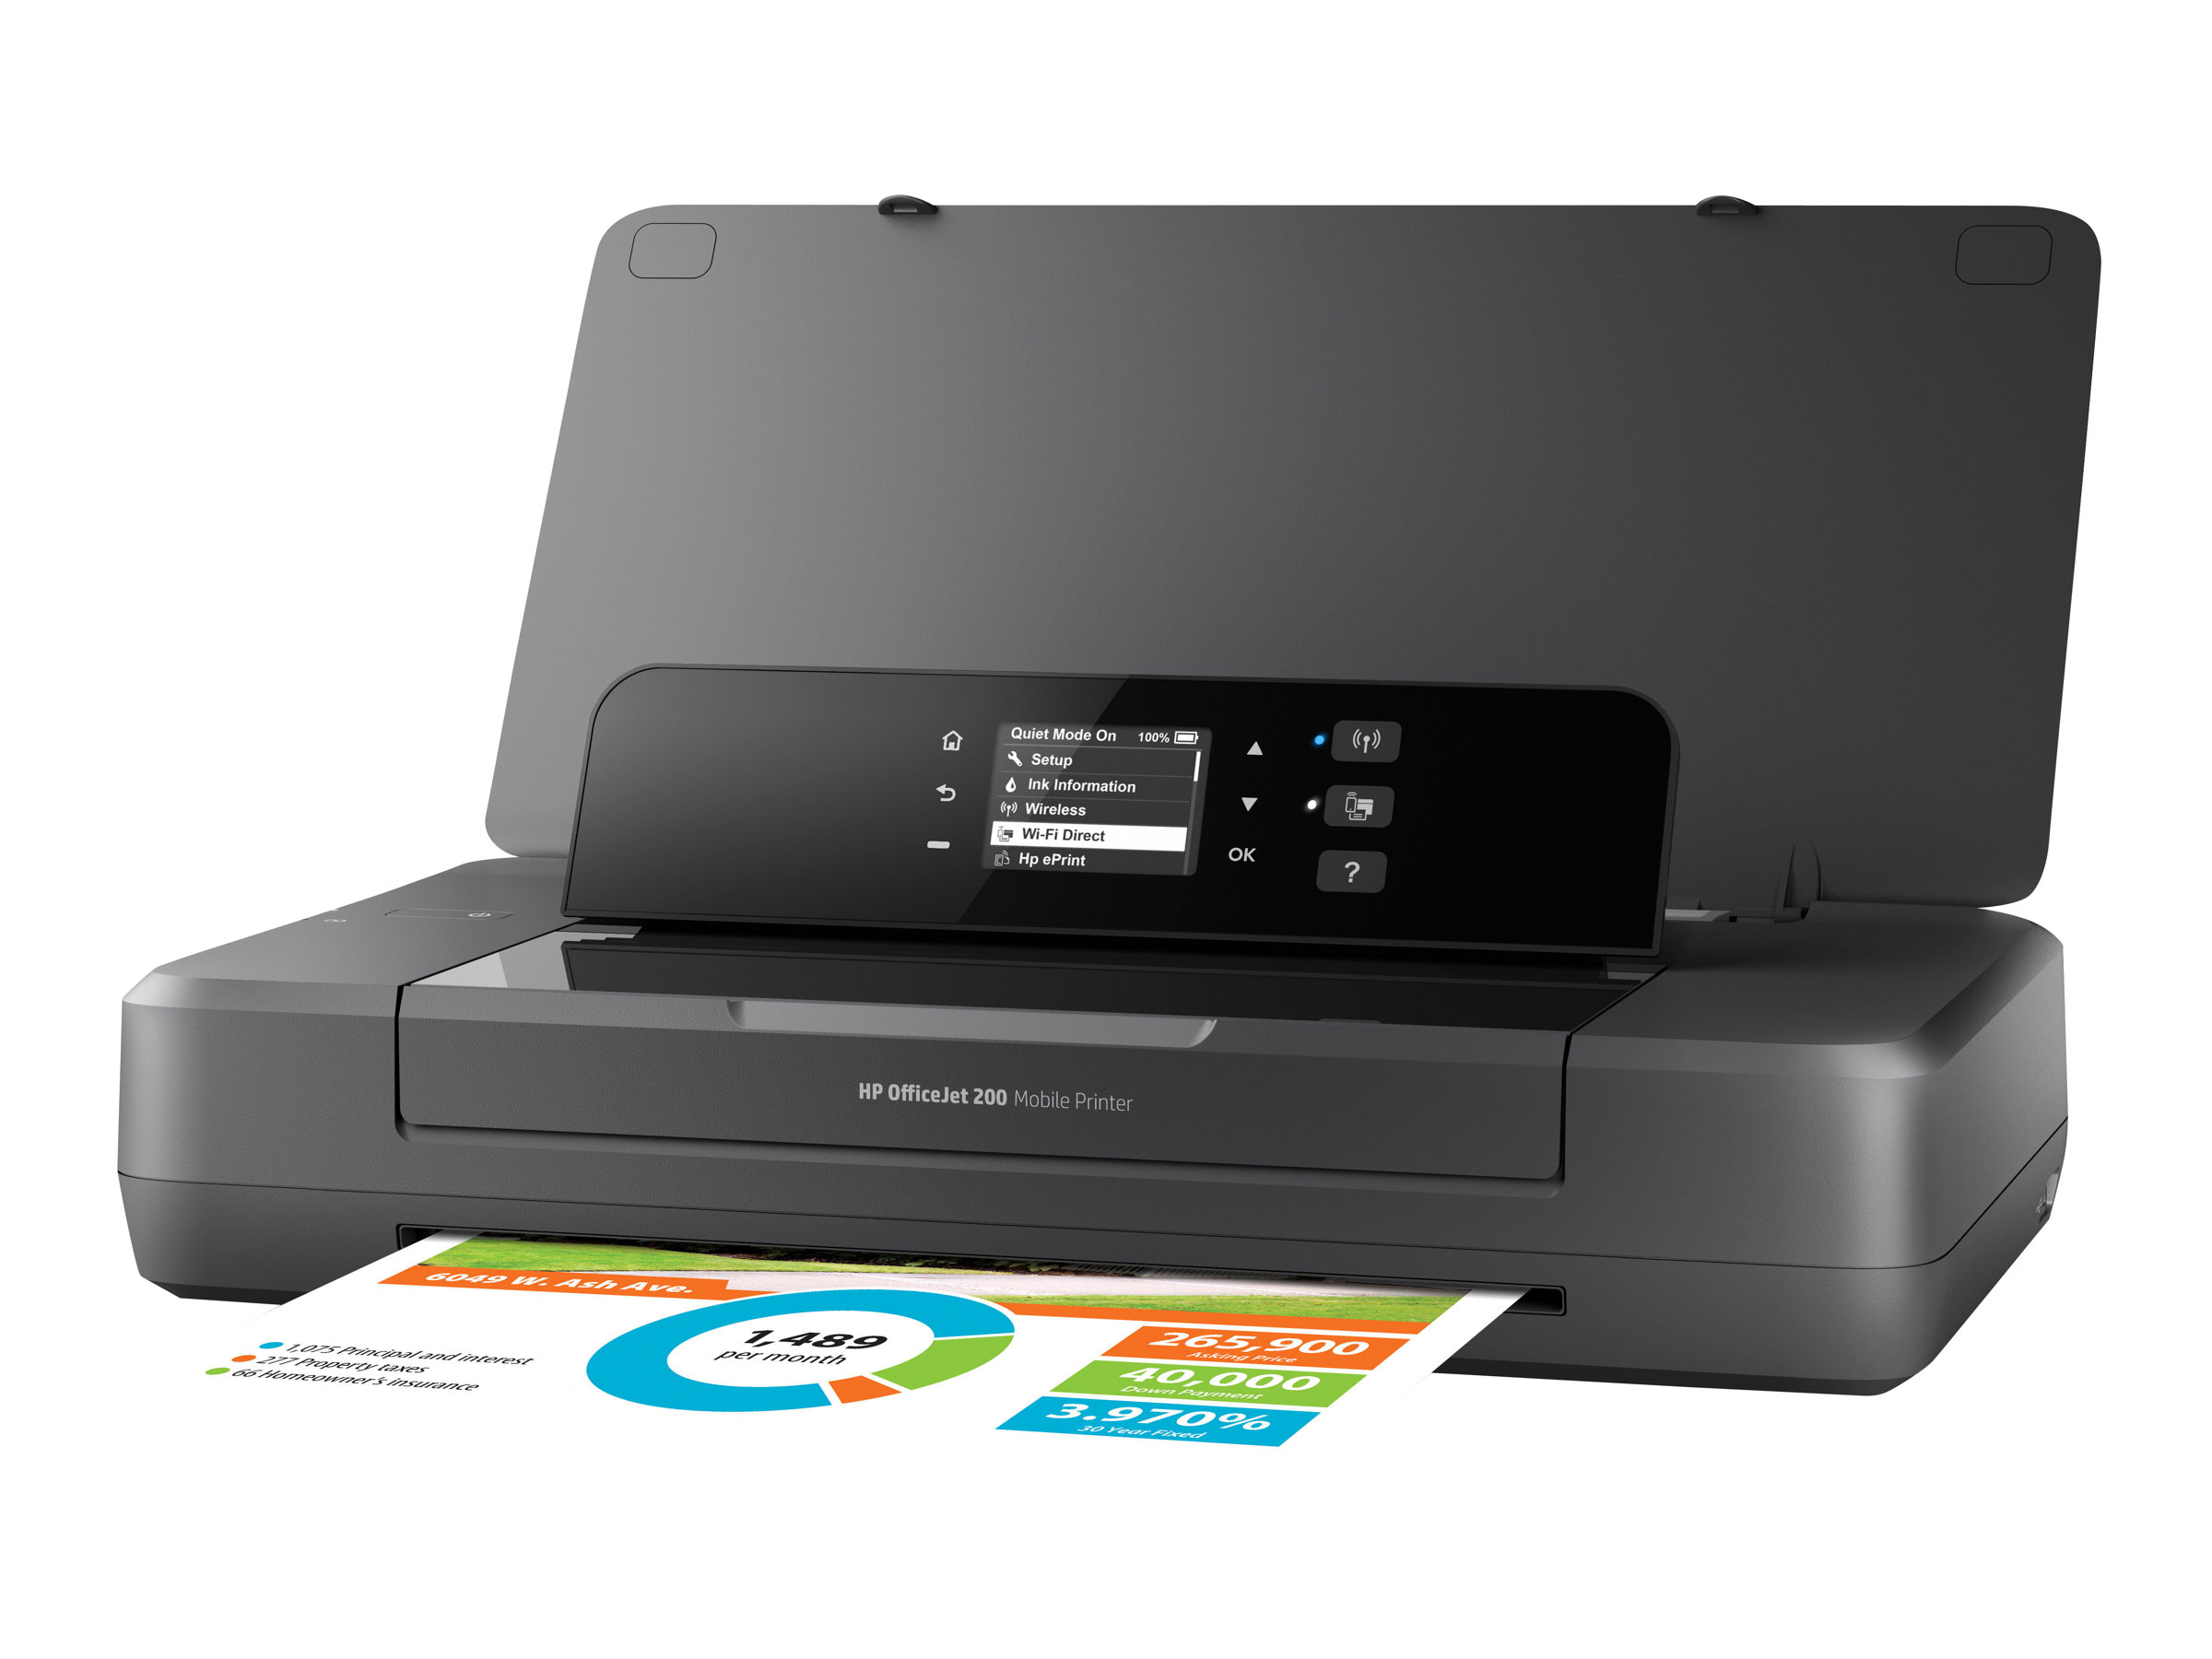 HP Officejet 200 Mobile Printer - Drucker - Farbe - Tintenstrahl - A4/Legal - 1200 x 1200 dpi